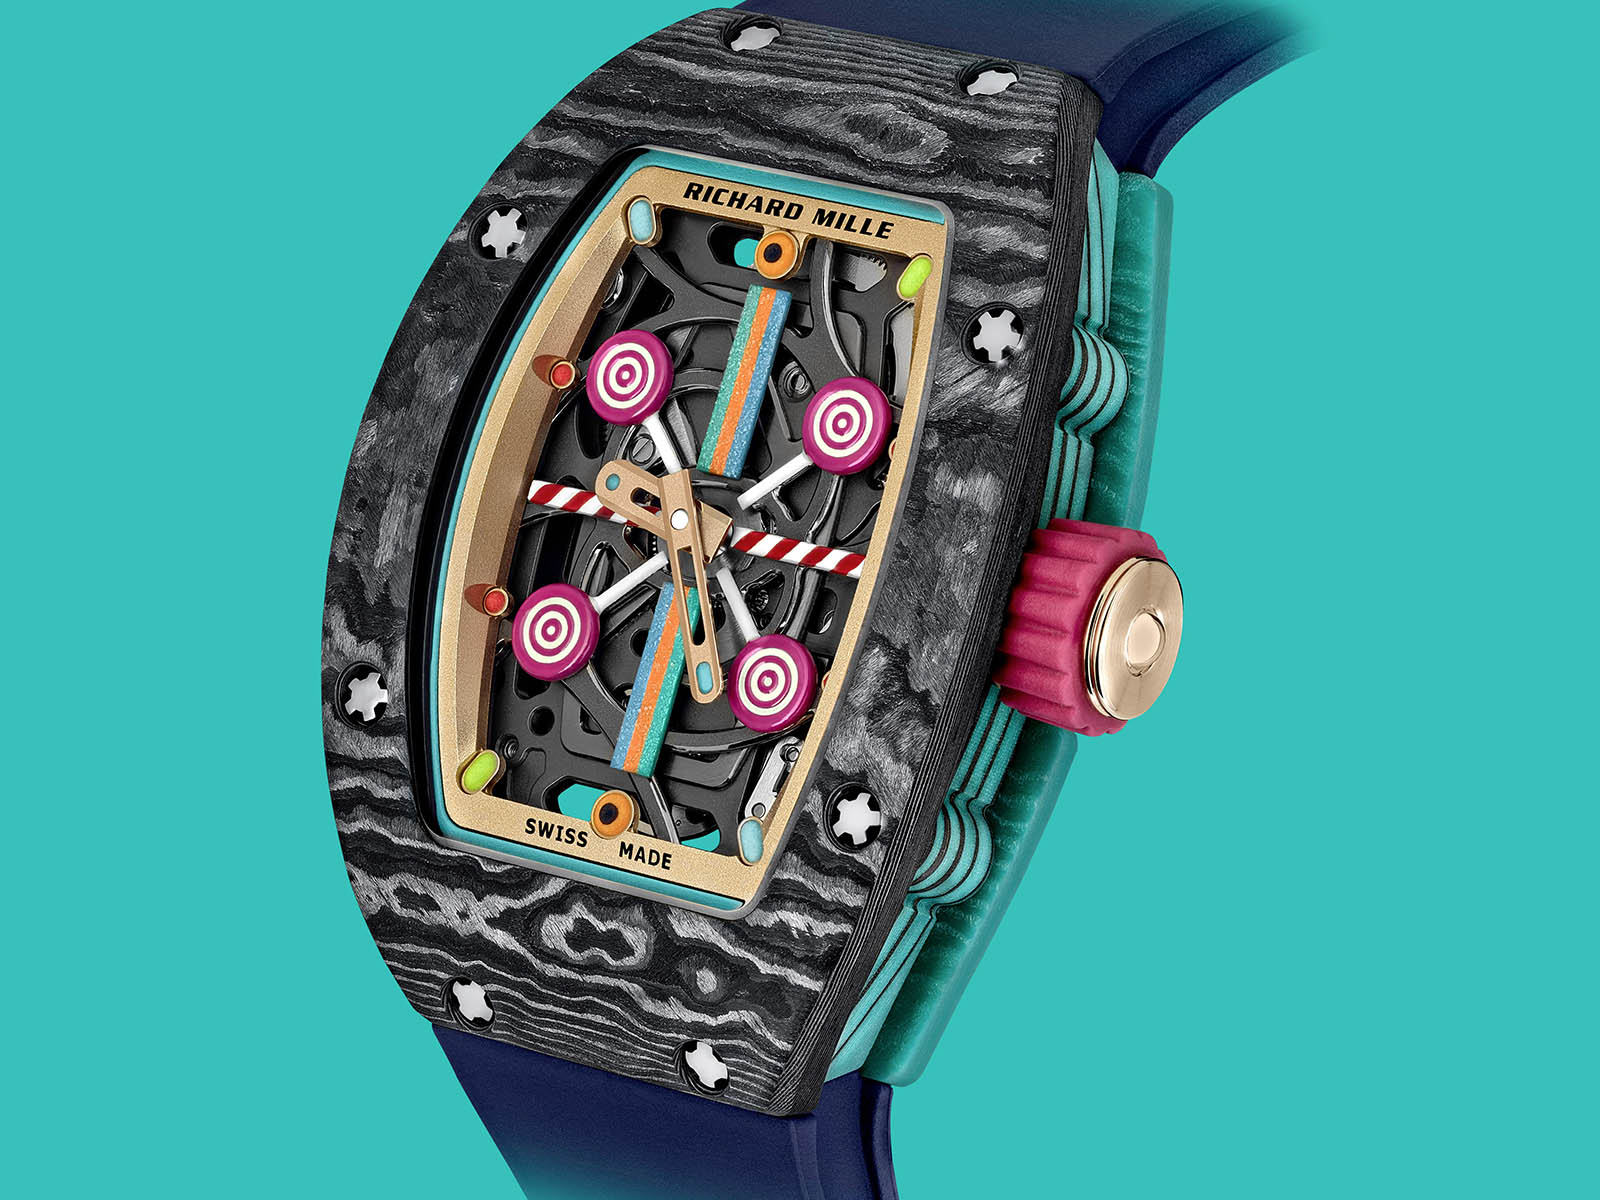 rm-07-03-richard-mille-automatic-myrtille.jpg